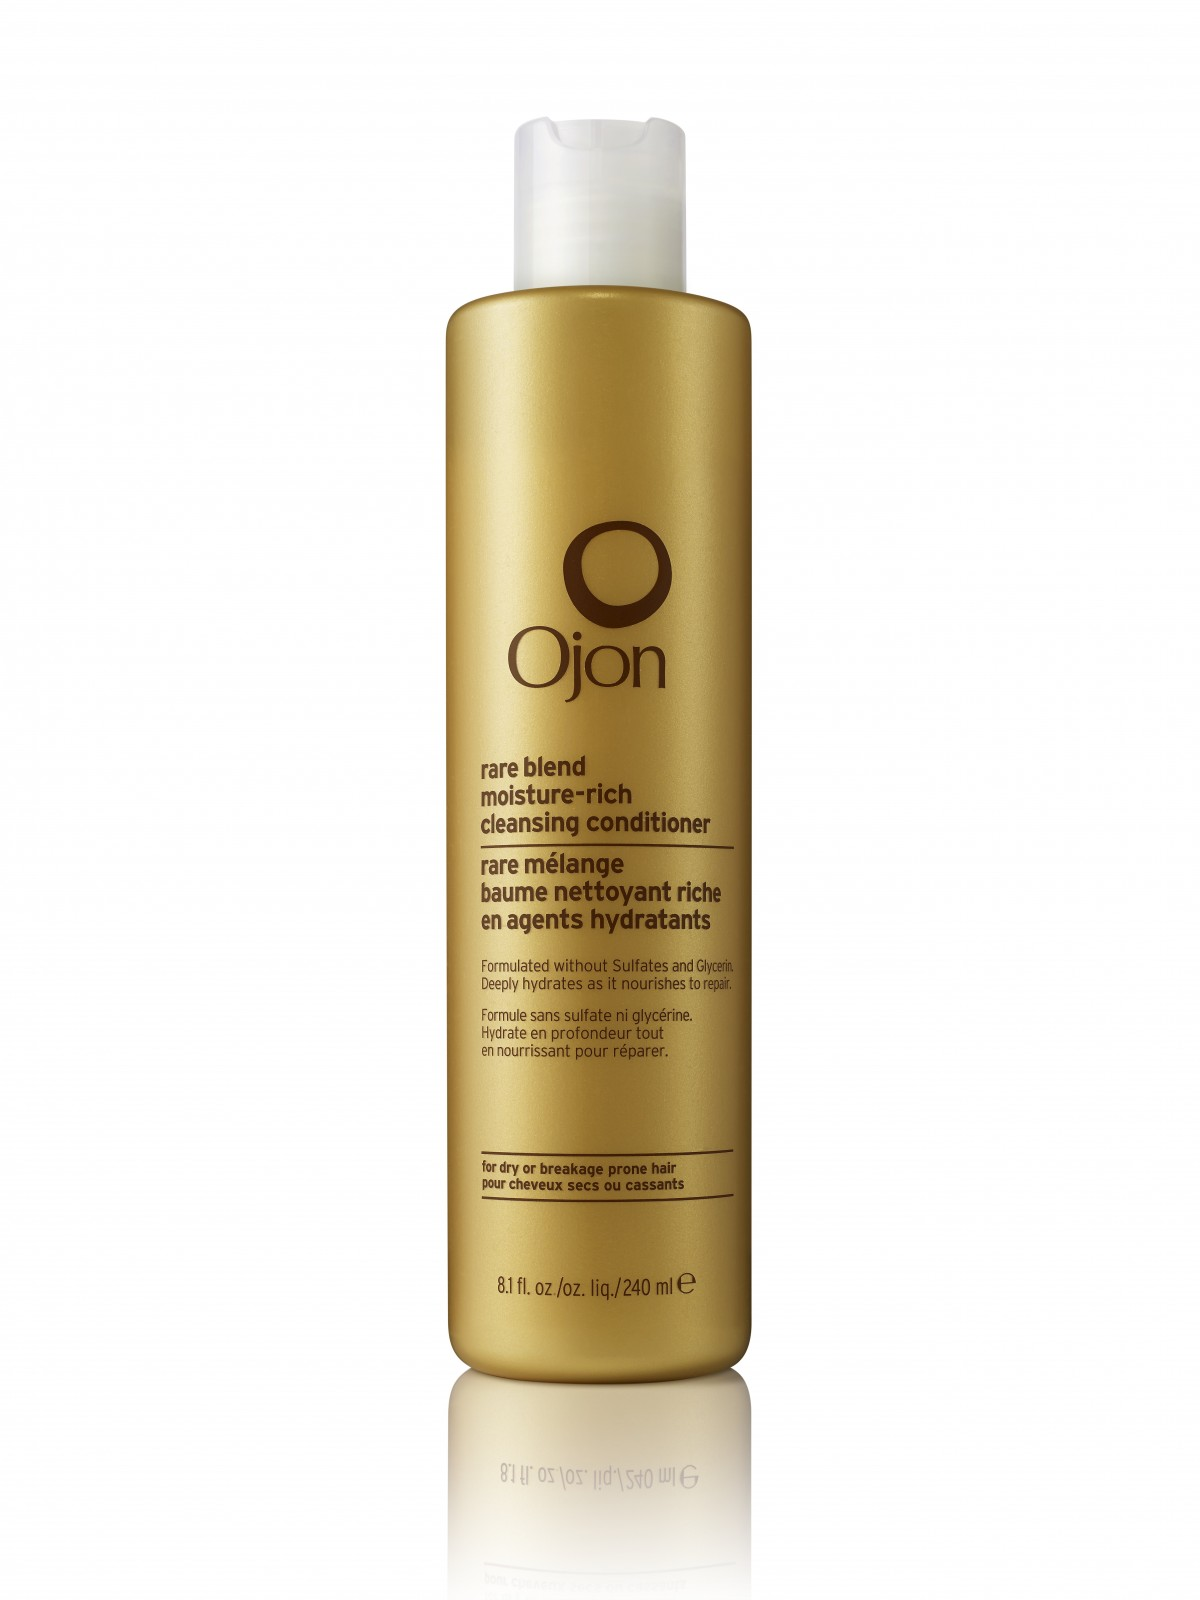 Shampoo vs. Conditioner: Ojon Rare Blend Moisture-rich Cleansing Conditioner